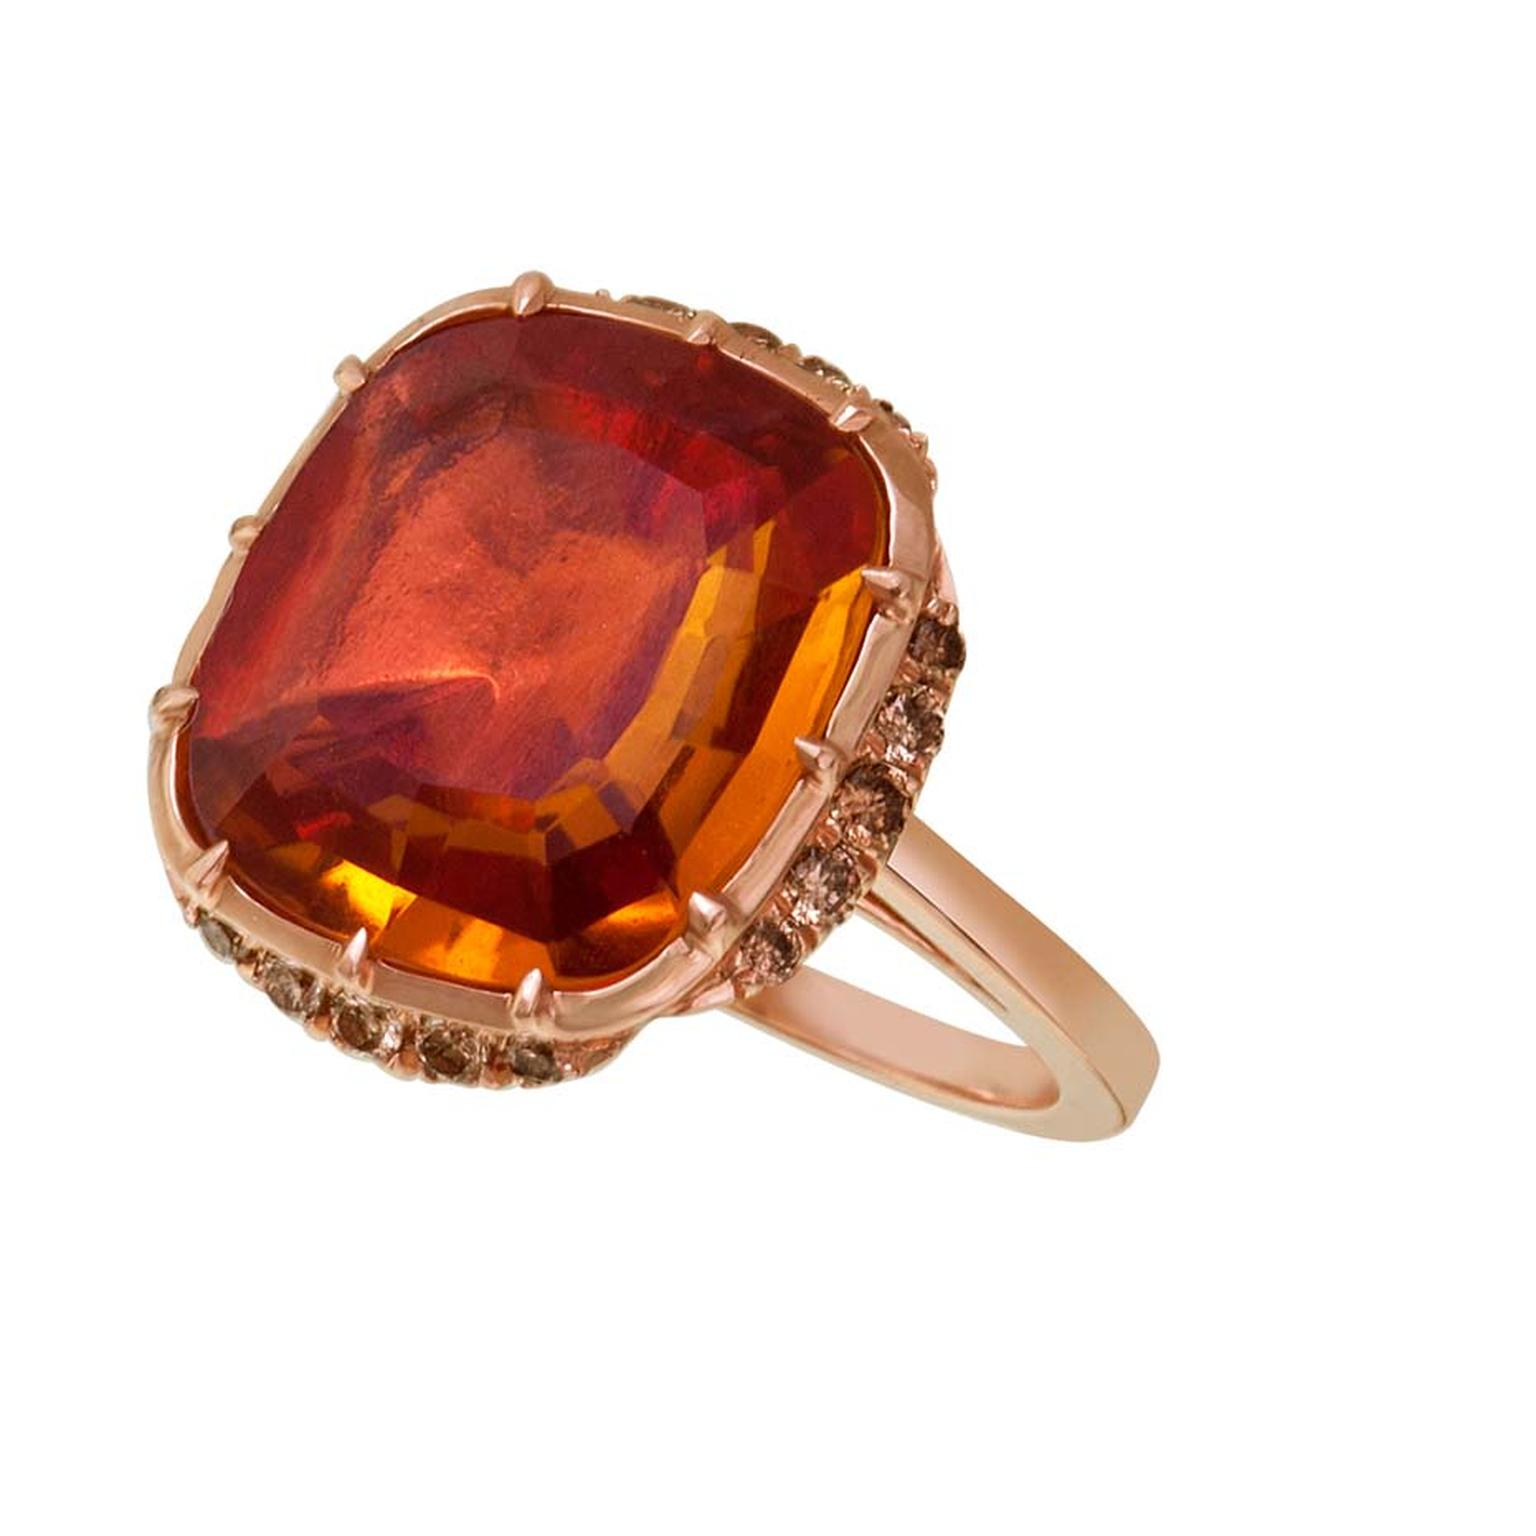 Larkspur & Hawk Caprice Wren honey citrine ring in rose gold with rose foil and diamonds ($5,400).